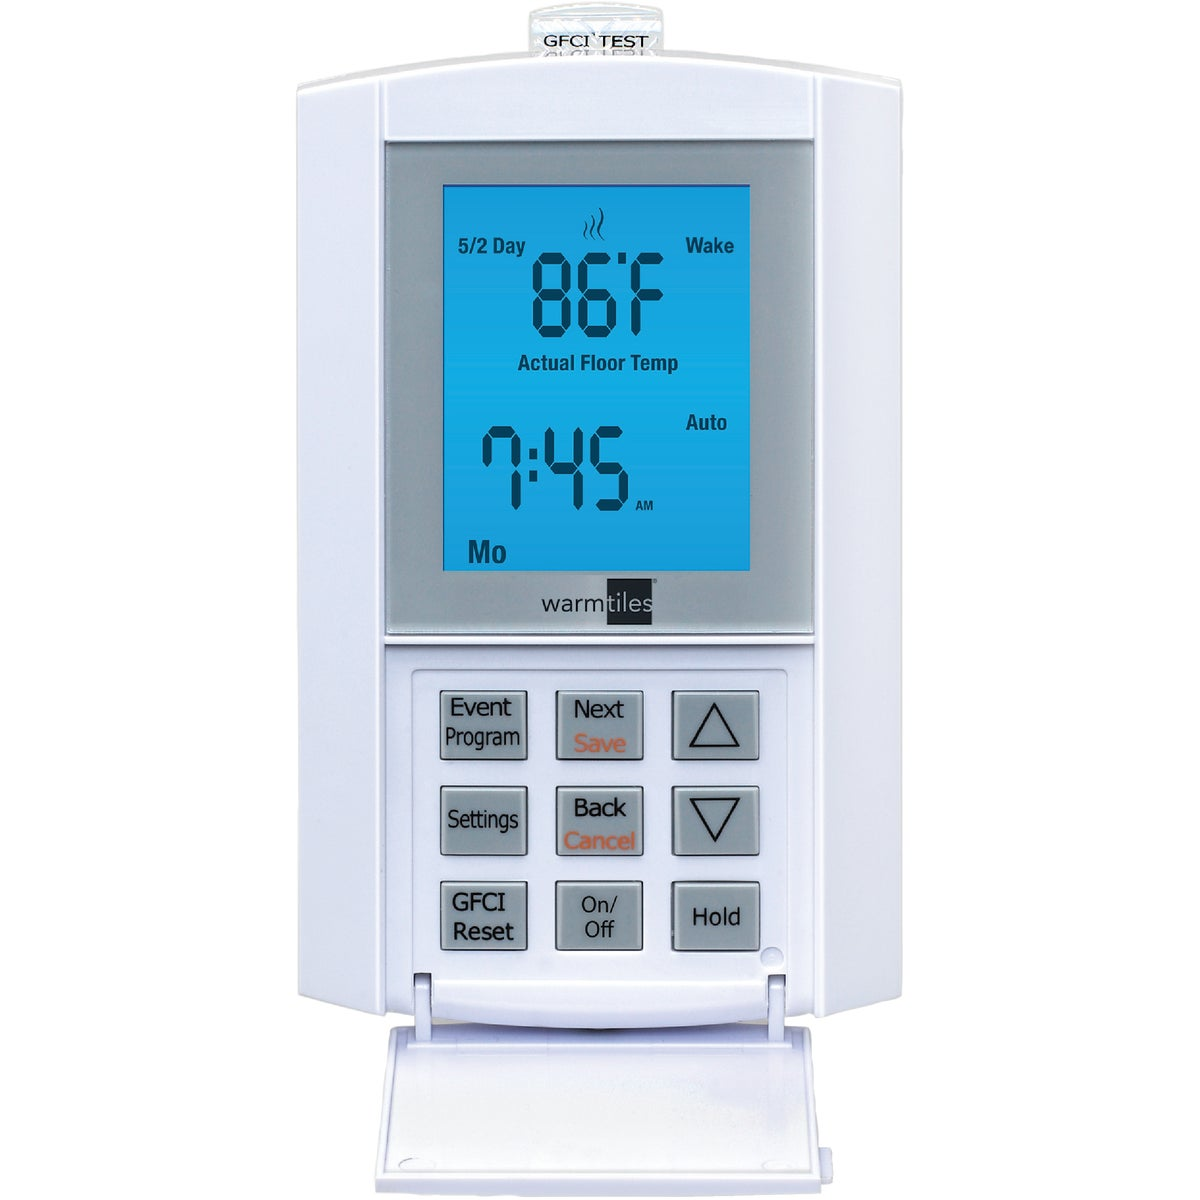 PROGRAMMABLE THERMOSTAT - FGS by Easy Heat Inc